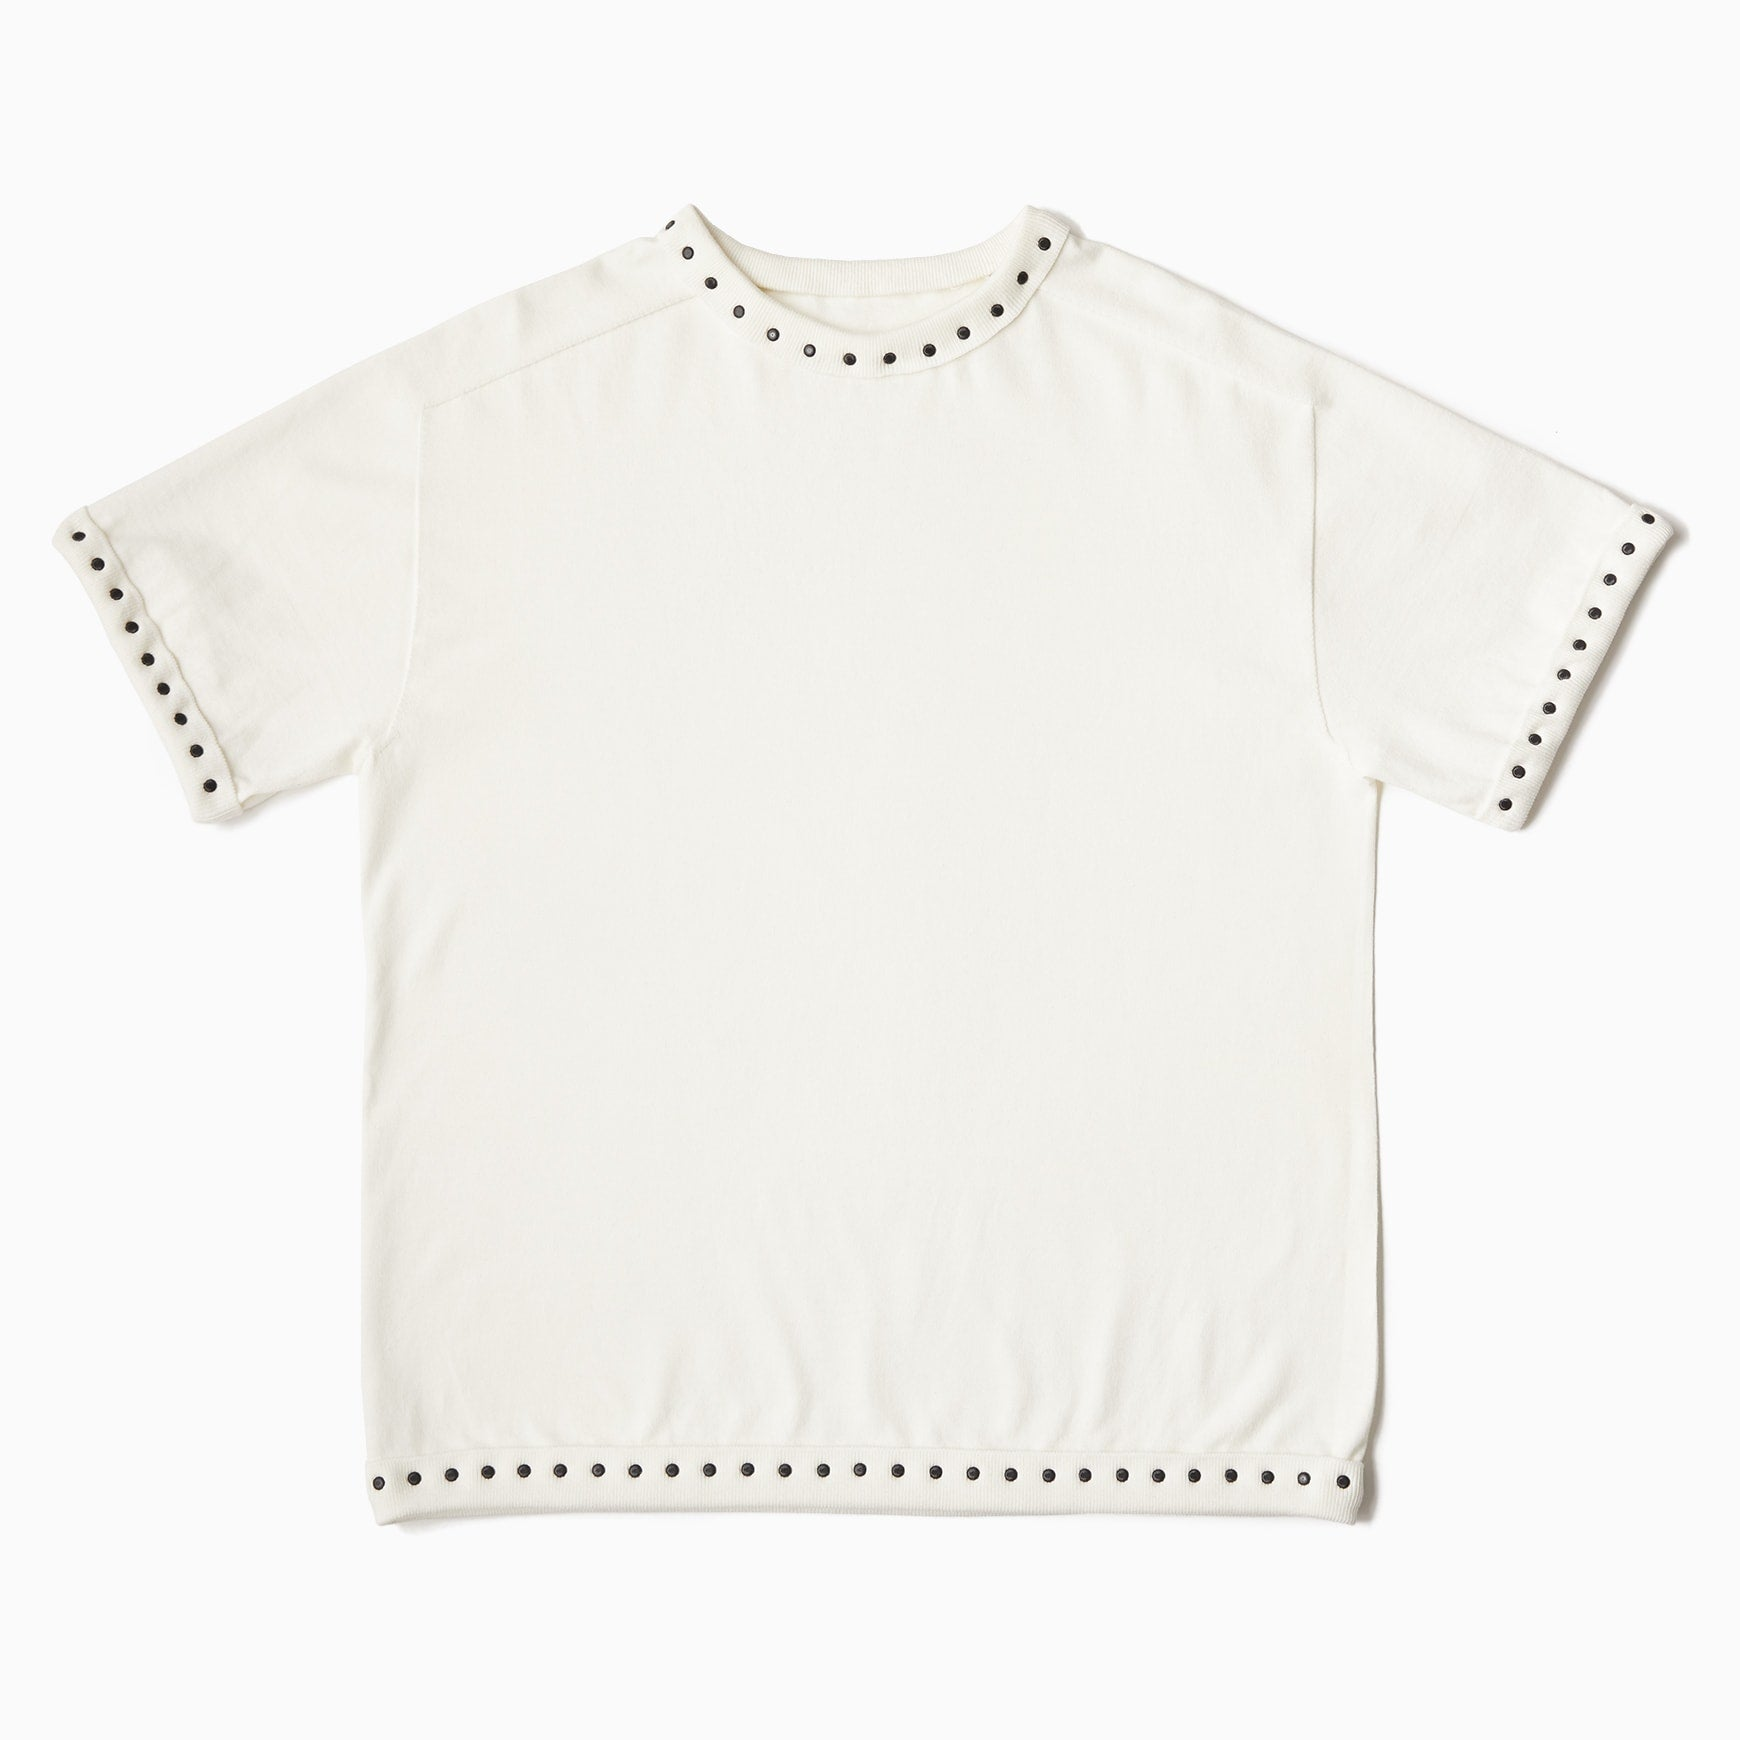 TYPE-1 Knit Half Sleeves Organic Cotton Body Part (White)